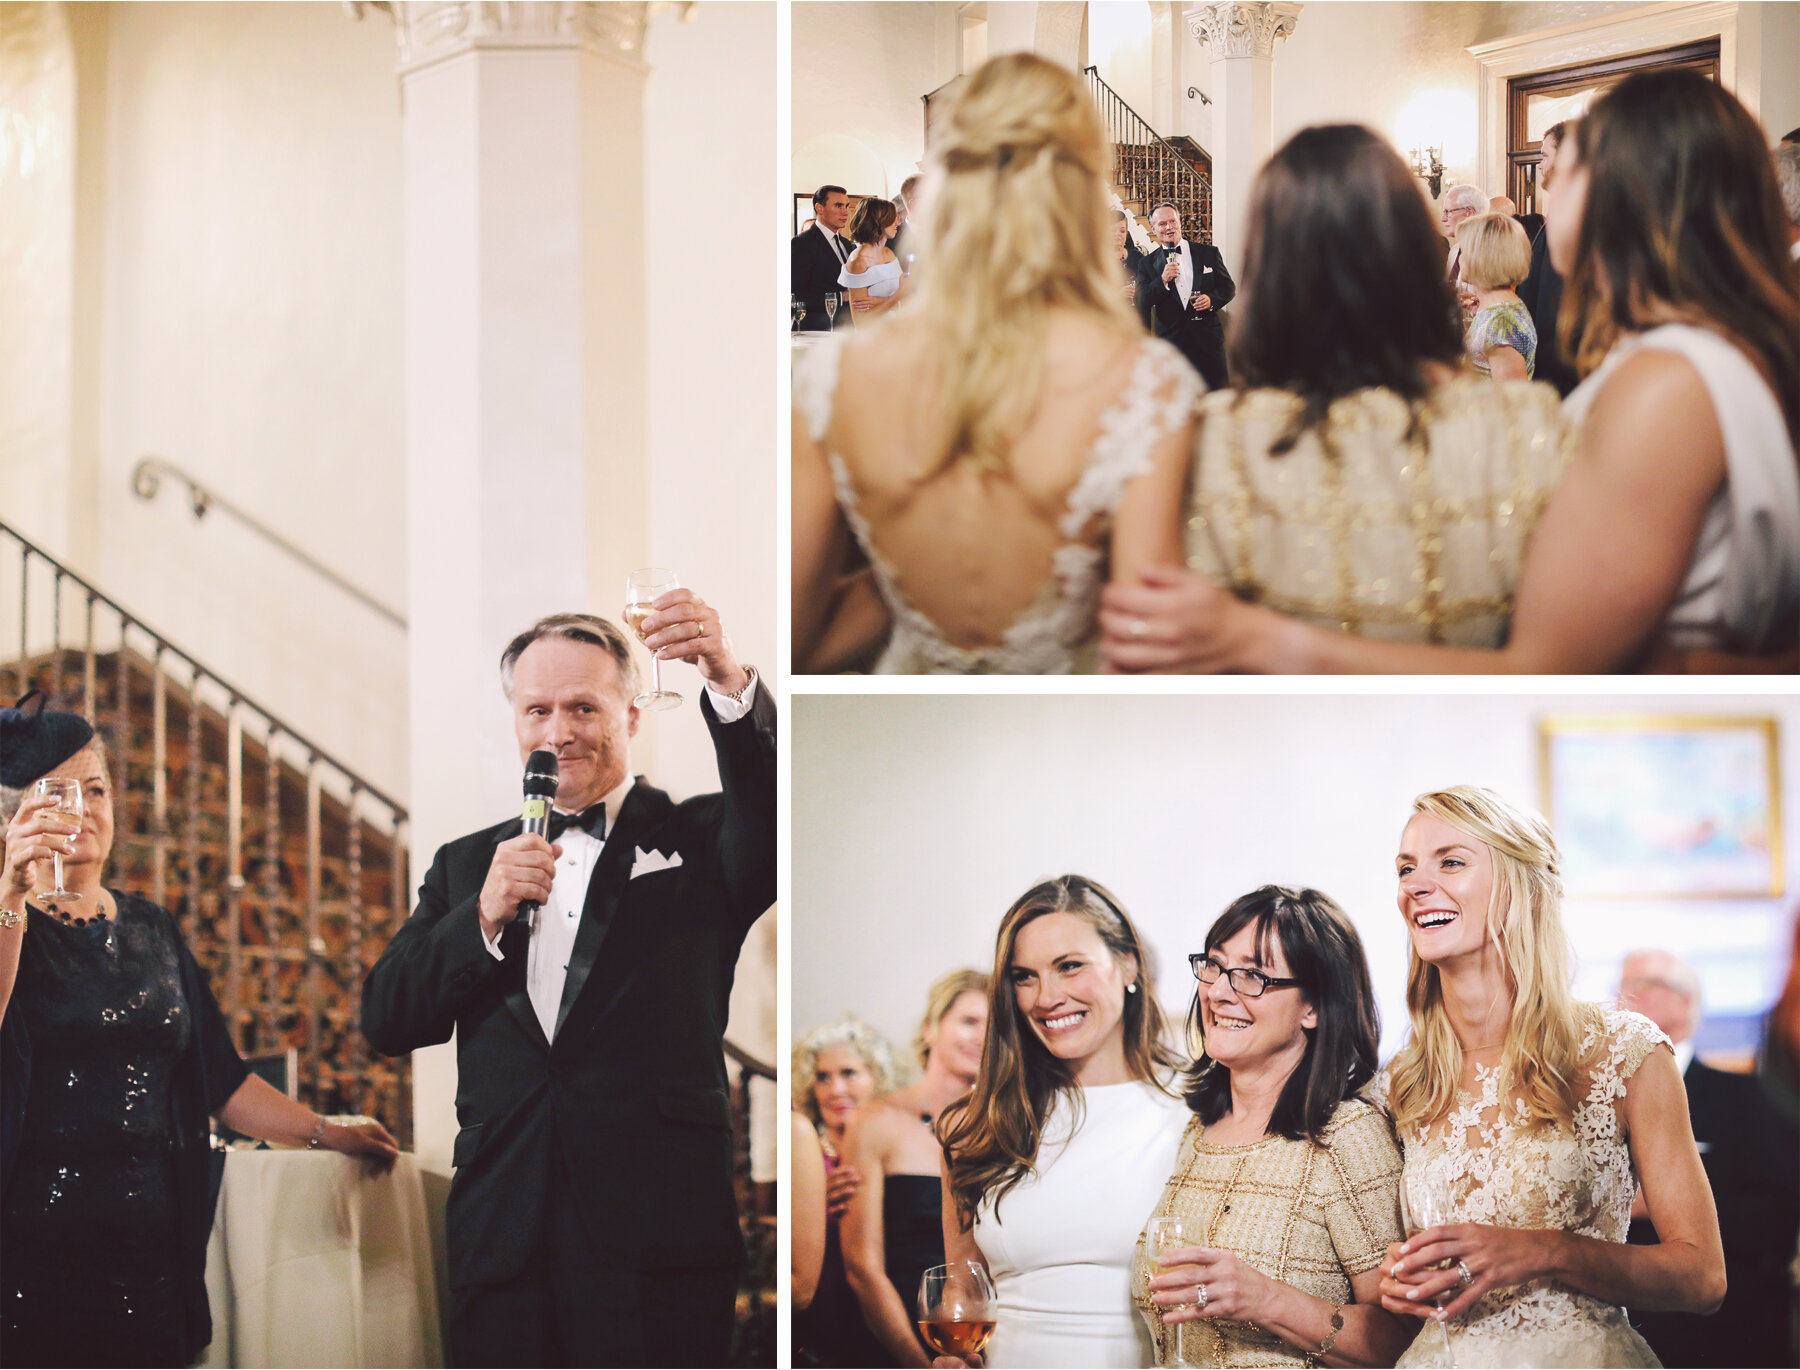 20 Wedding Vick Photography Minneapolis Minnesota Reception Womens Club Toast Mother Sister Michelle and William.jpg